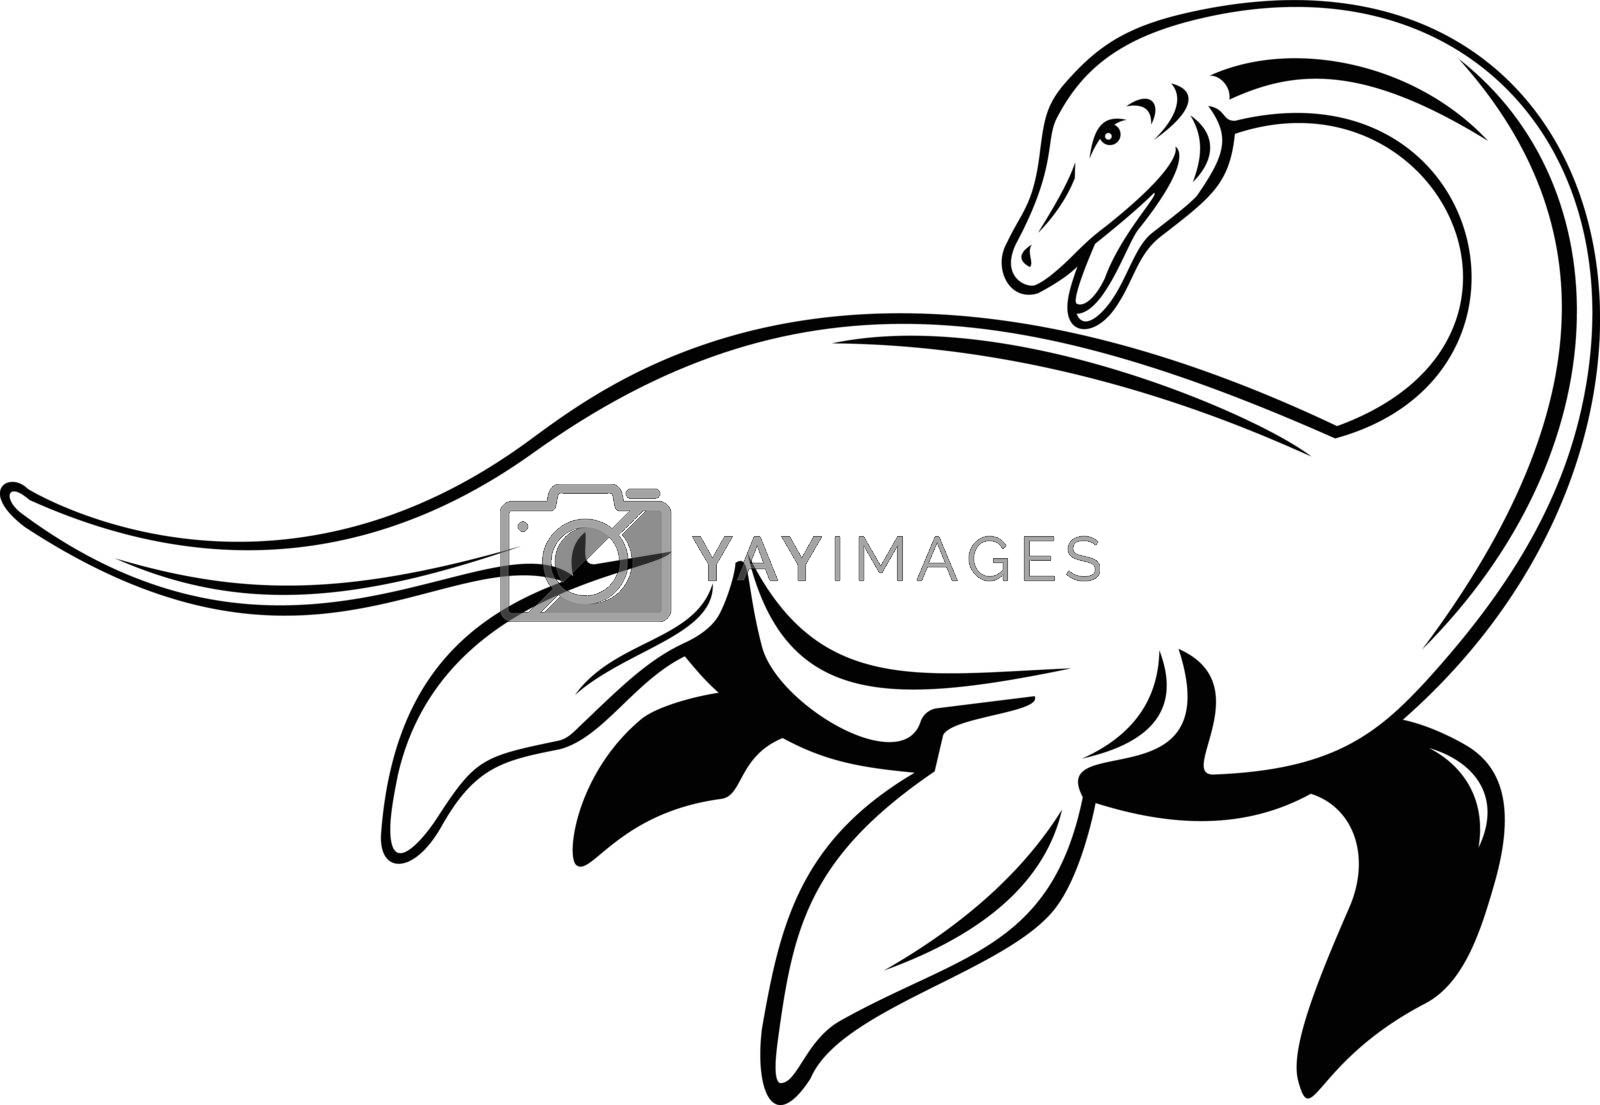 Retro style illustration of a Loch Ness Monster or Nessie, a cryptid in cryptozoology and Scottish folklore that is large long-necked, viewed from side on isolated background in black and white.